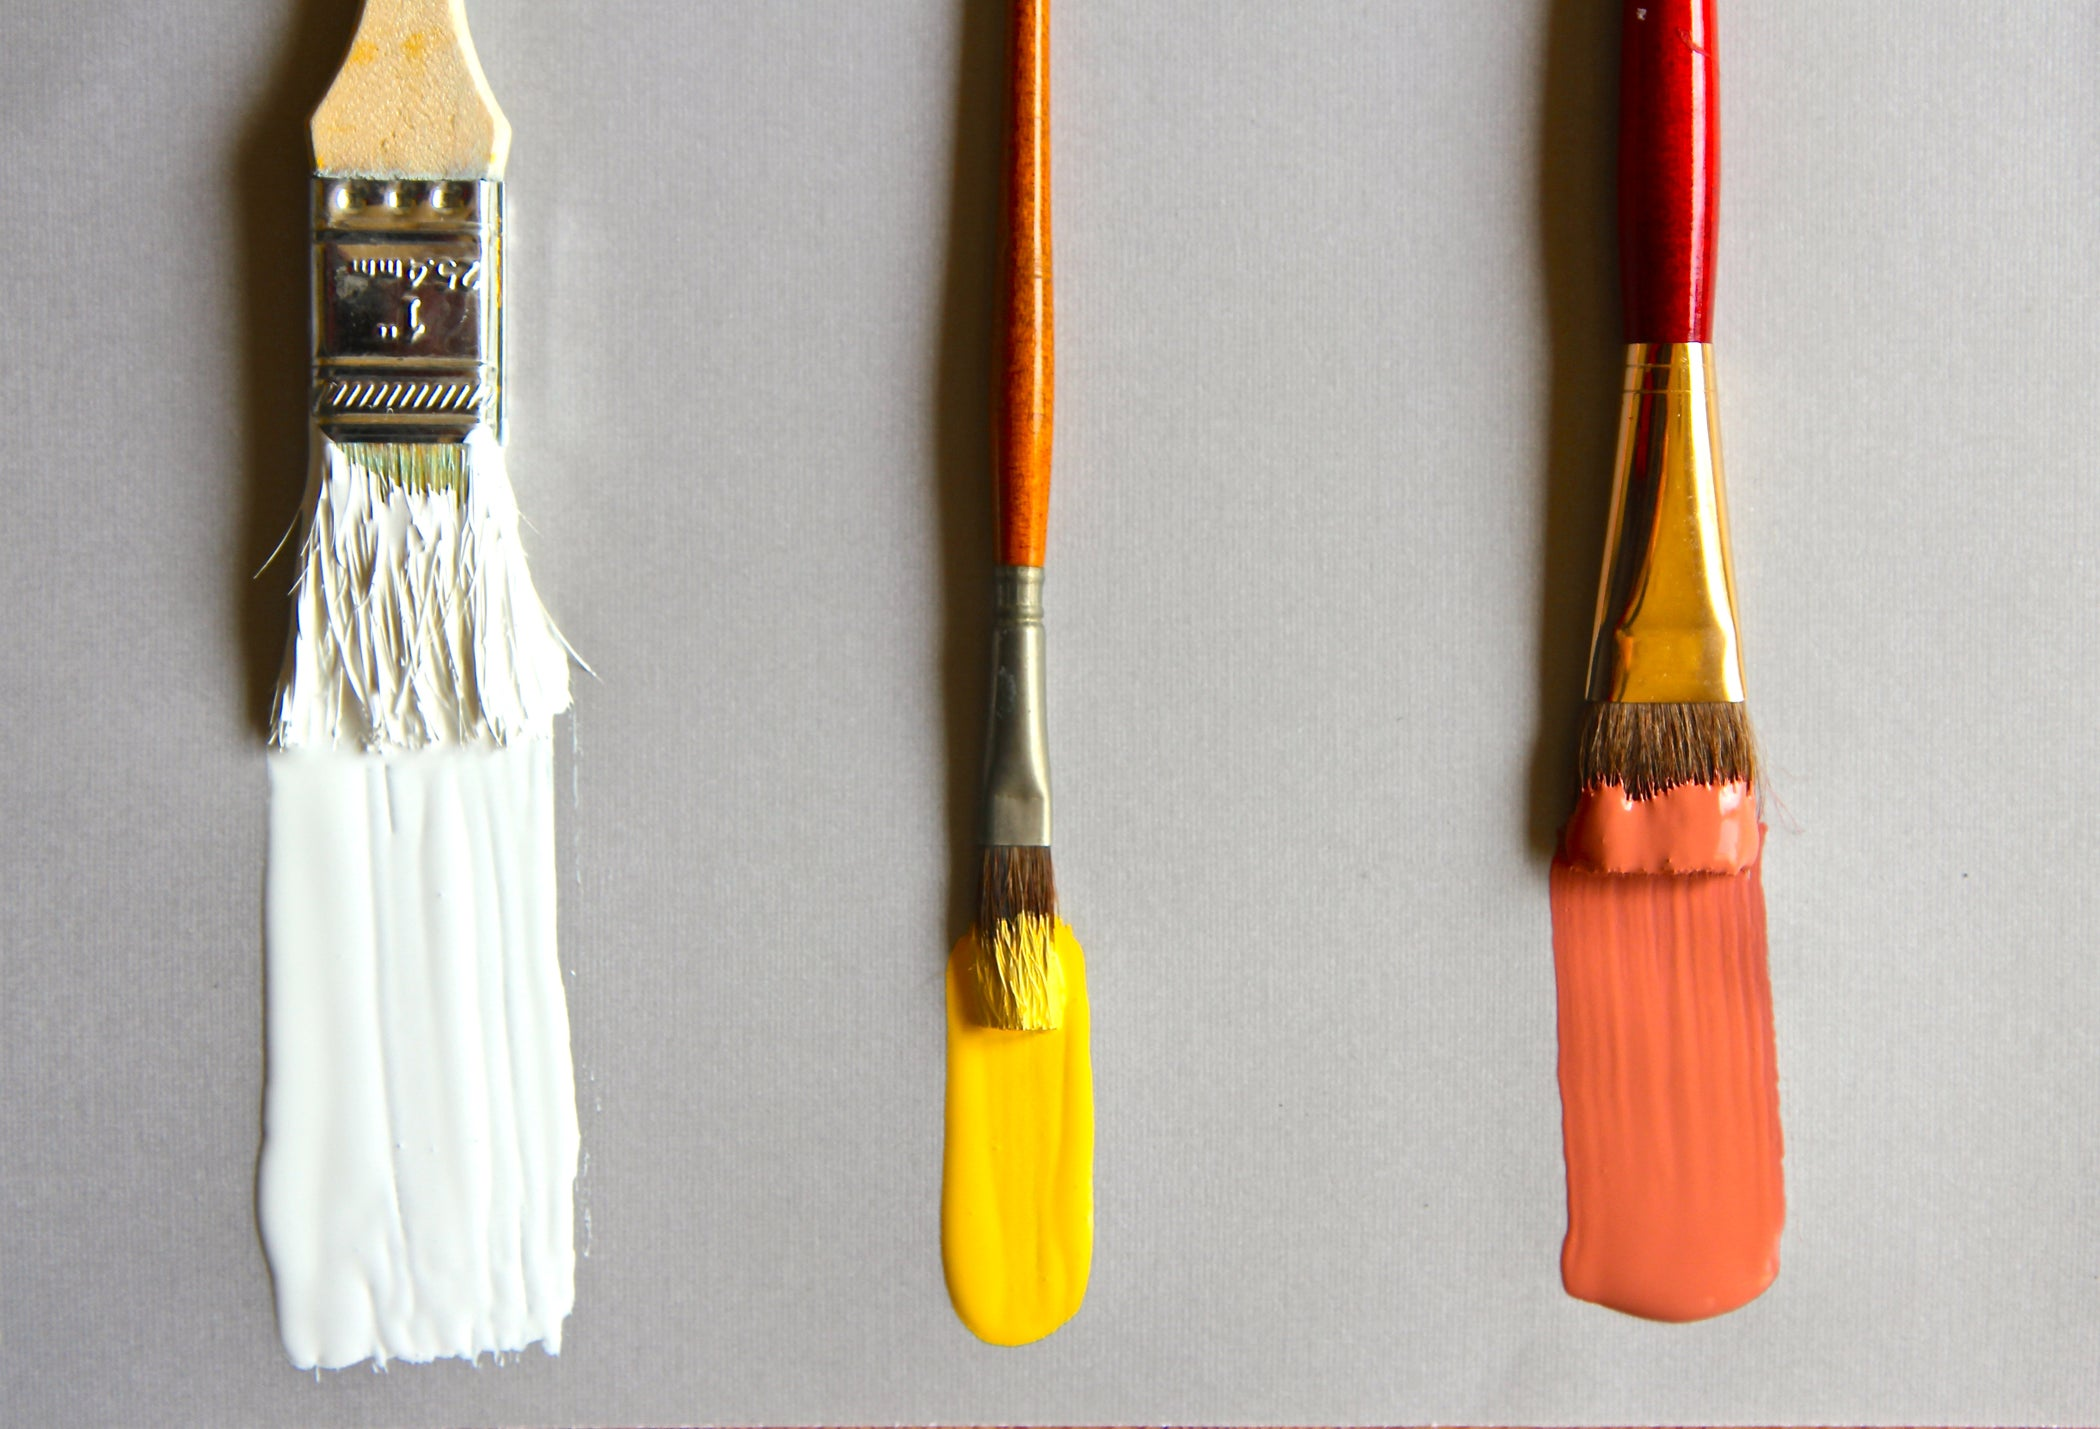 3 Ways to Clean Paint Brushes: 4 Steps (with Pictures)